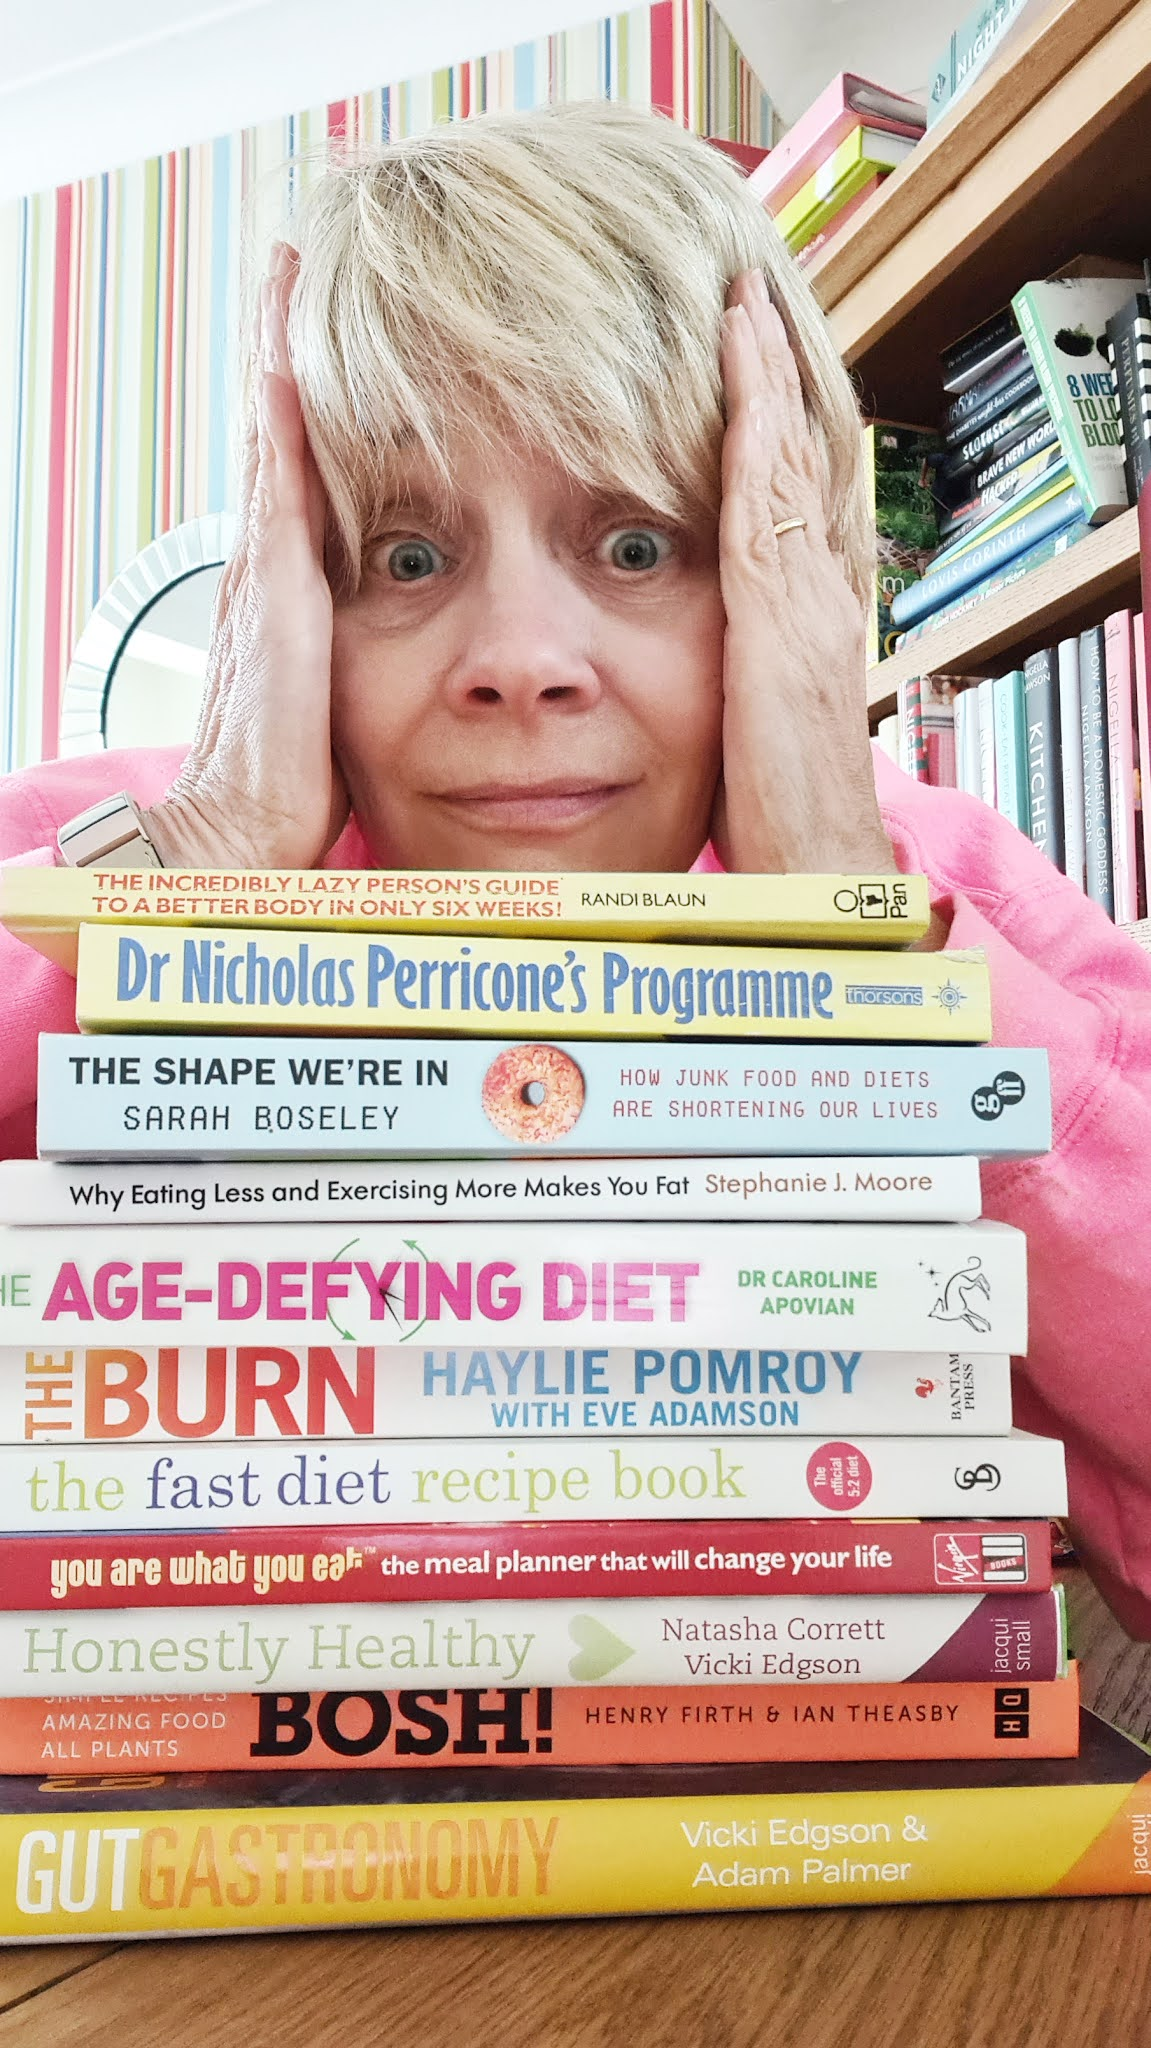 Gail Hanlon from Is This Mutton with some of her healthy eating and diet books